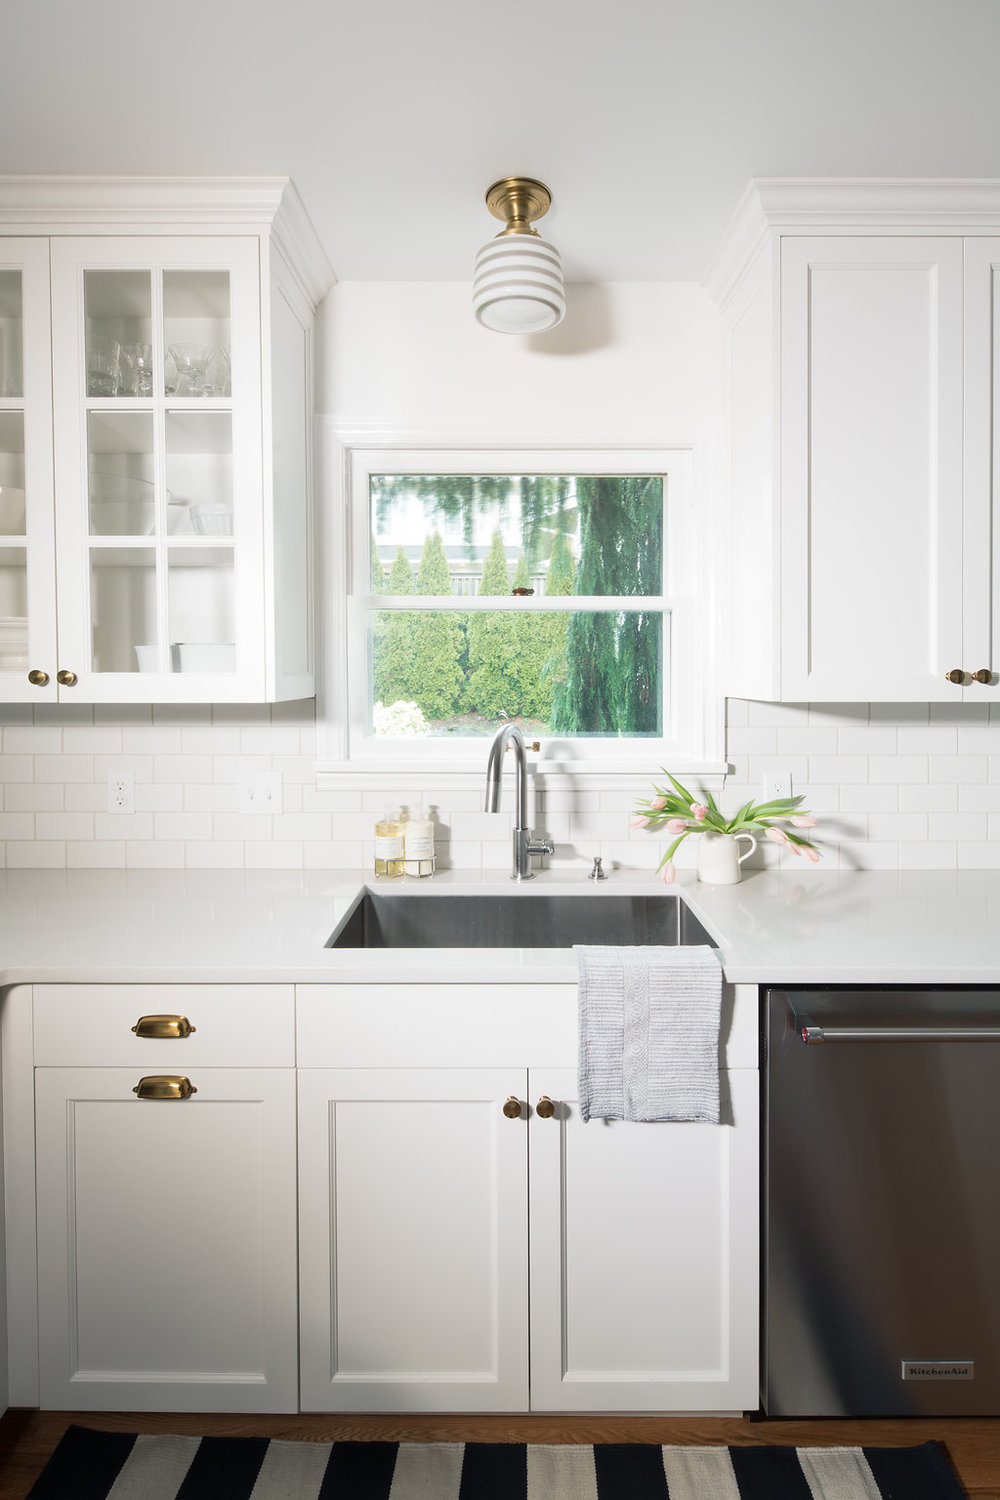 DistinctiveKitchens-Magnolia--11.jpg